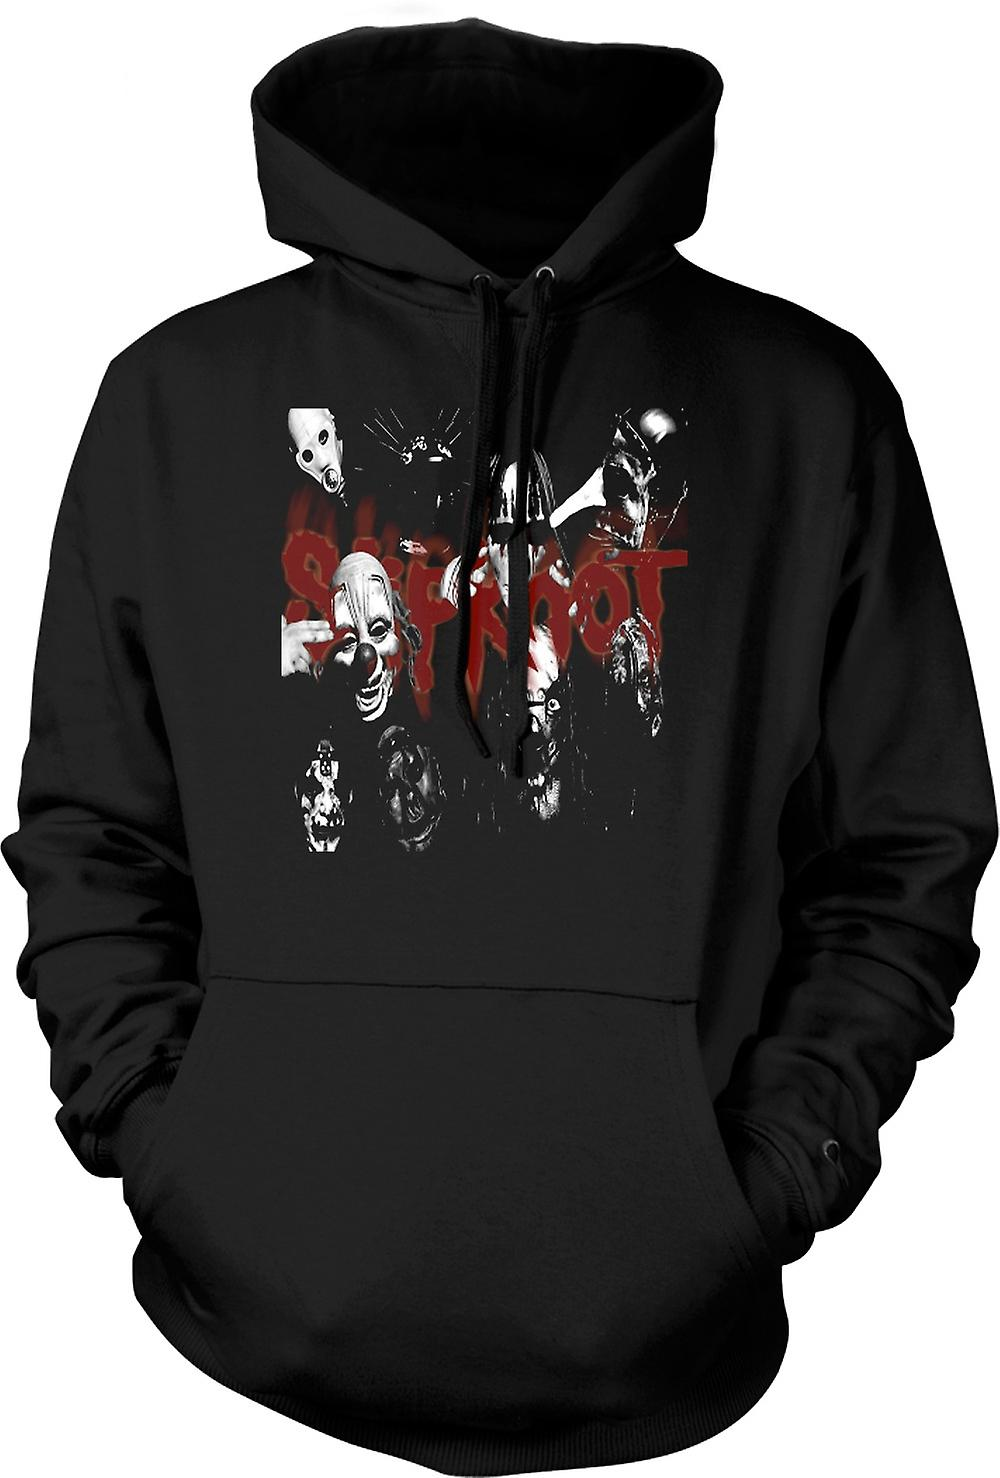 Mens hettegenser - Slipknot - Heavy Metal-bandet